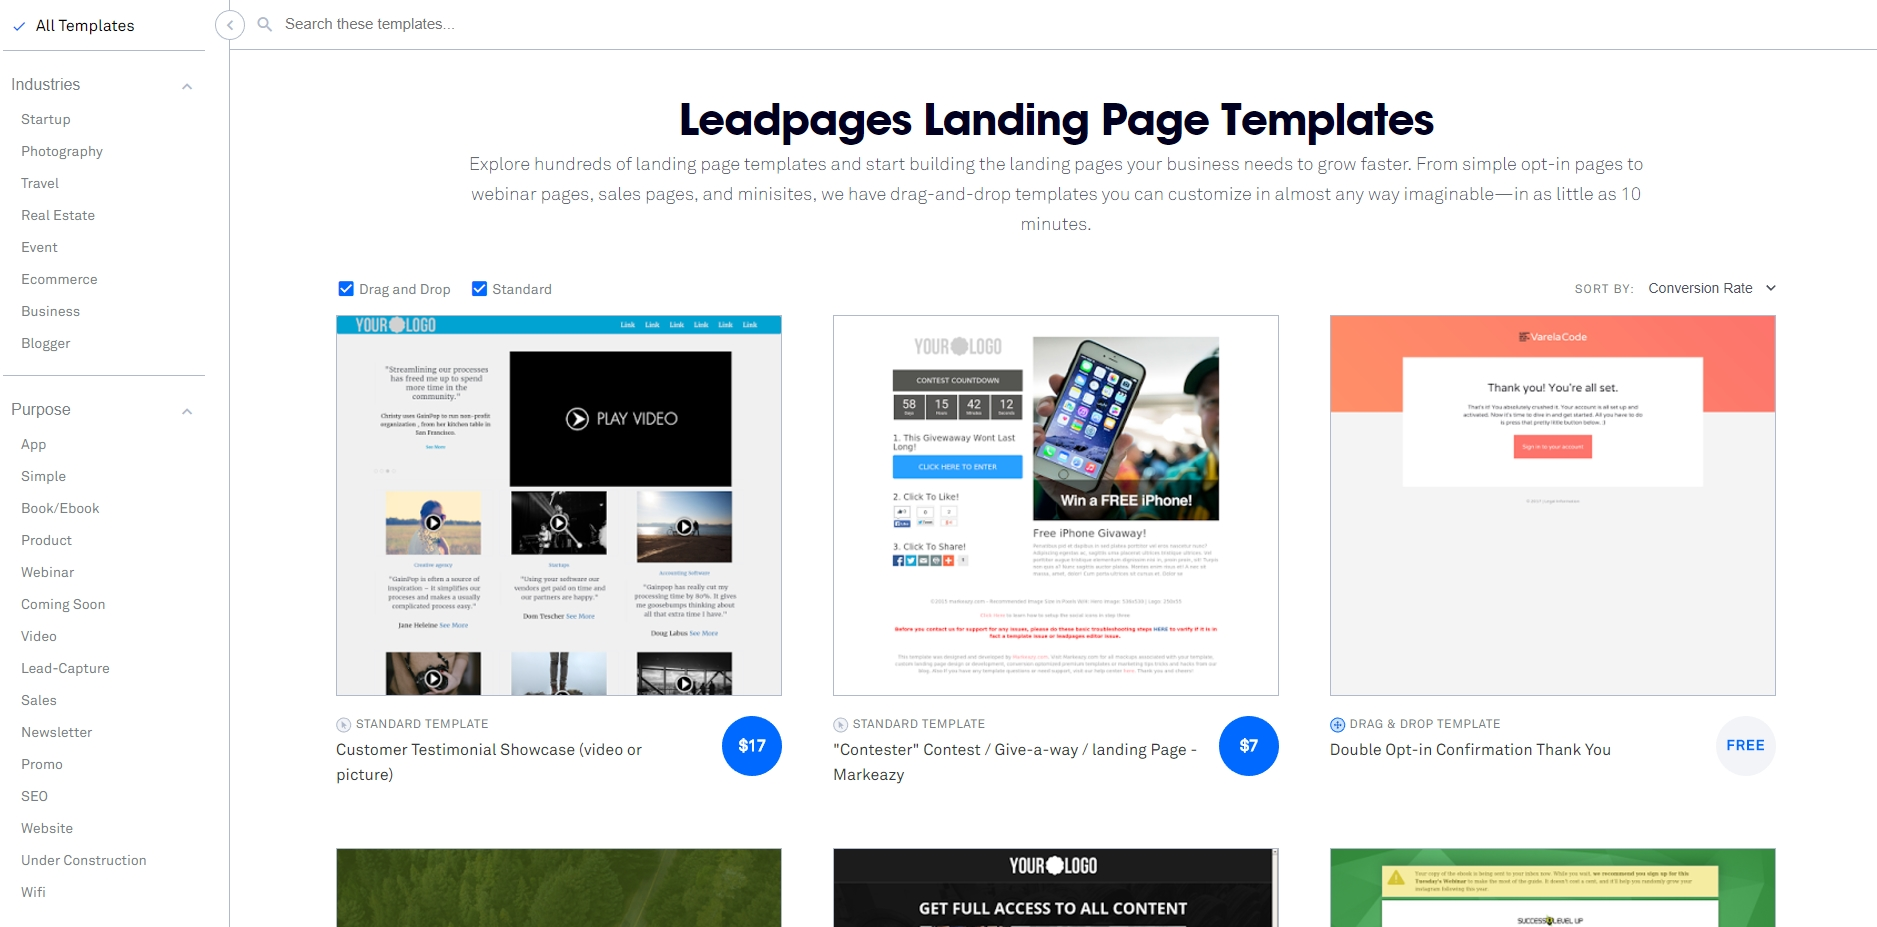 Leadpages has more than a hundred of templates to choose from that can be added to your site within minutes.